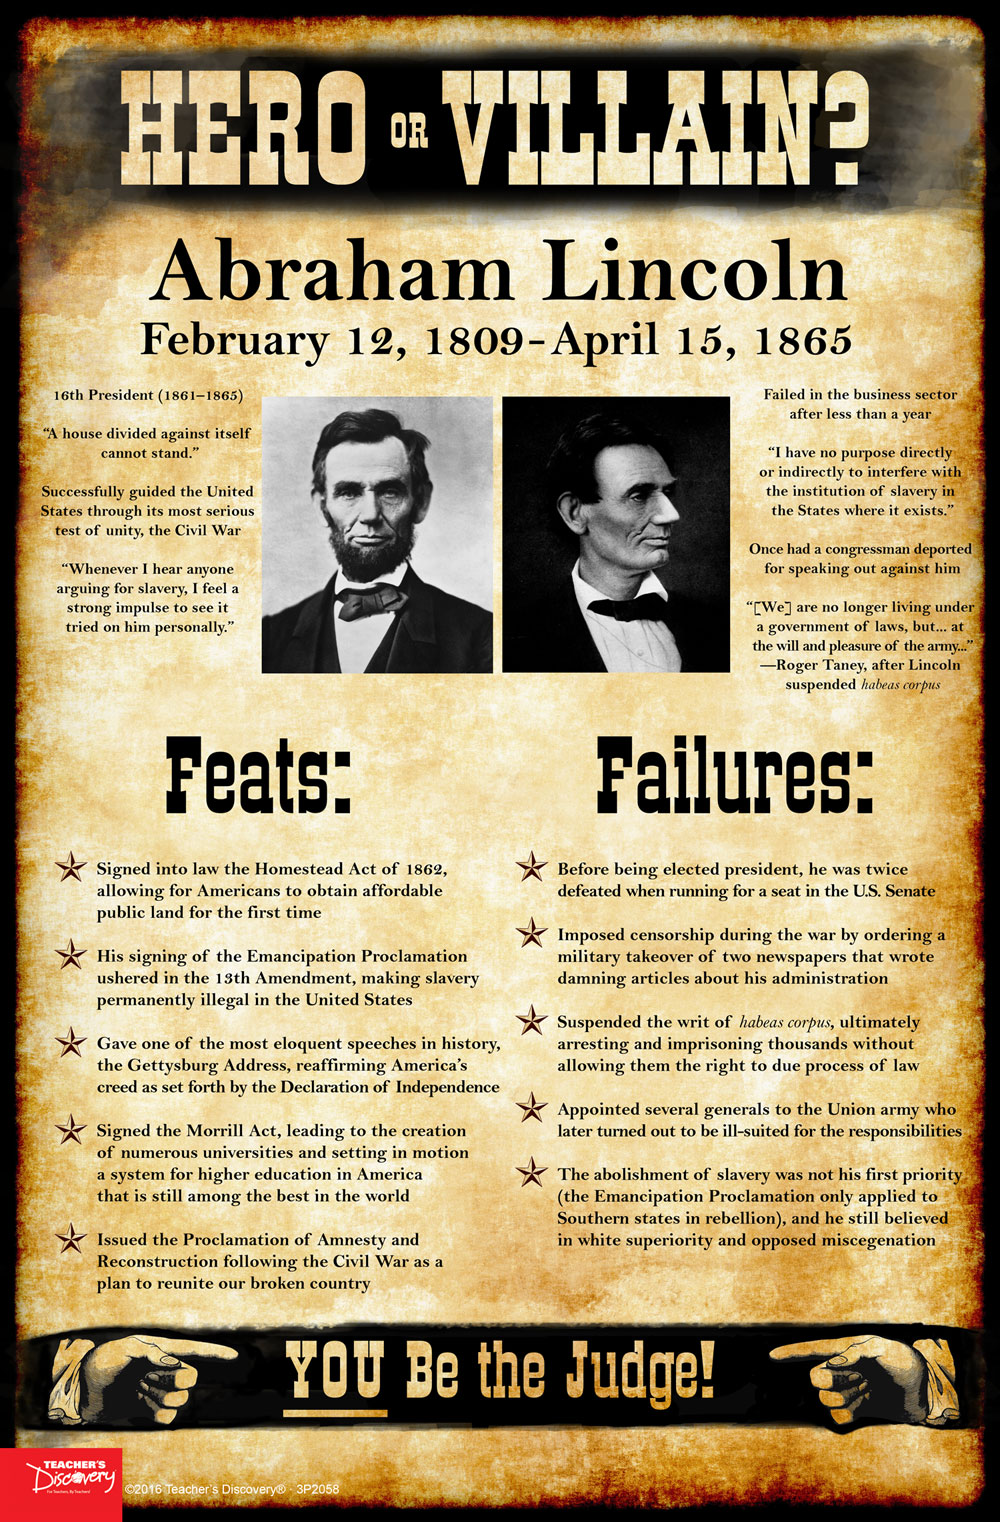 abraham lincoln hero or villain mini poster social studies teacher 39 s discovery. Black Bedroom Furniture Sets. Home Design Ideas